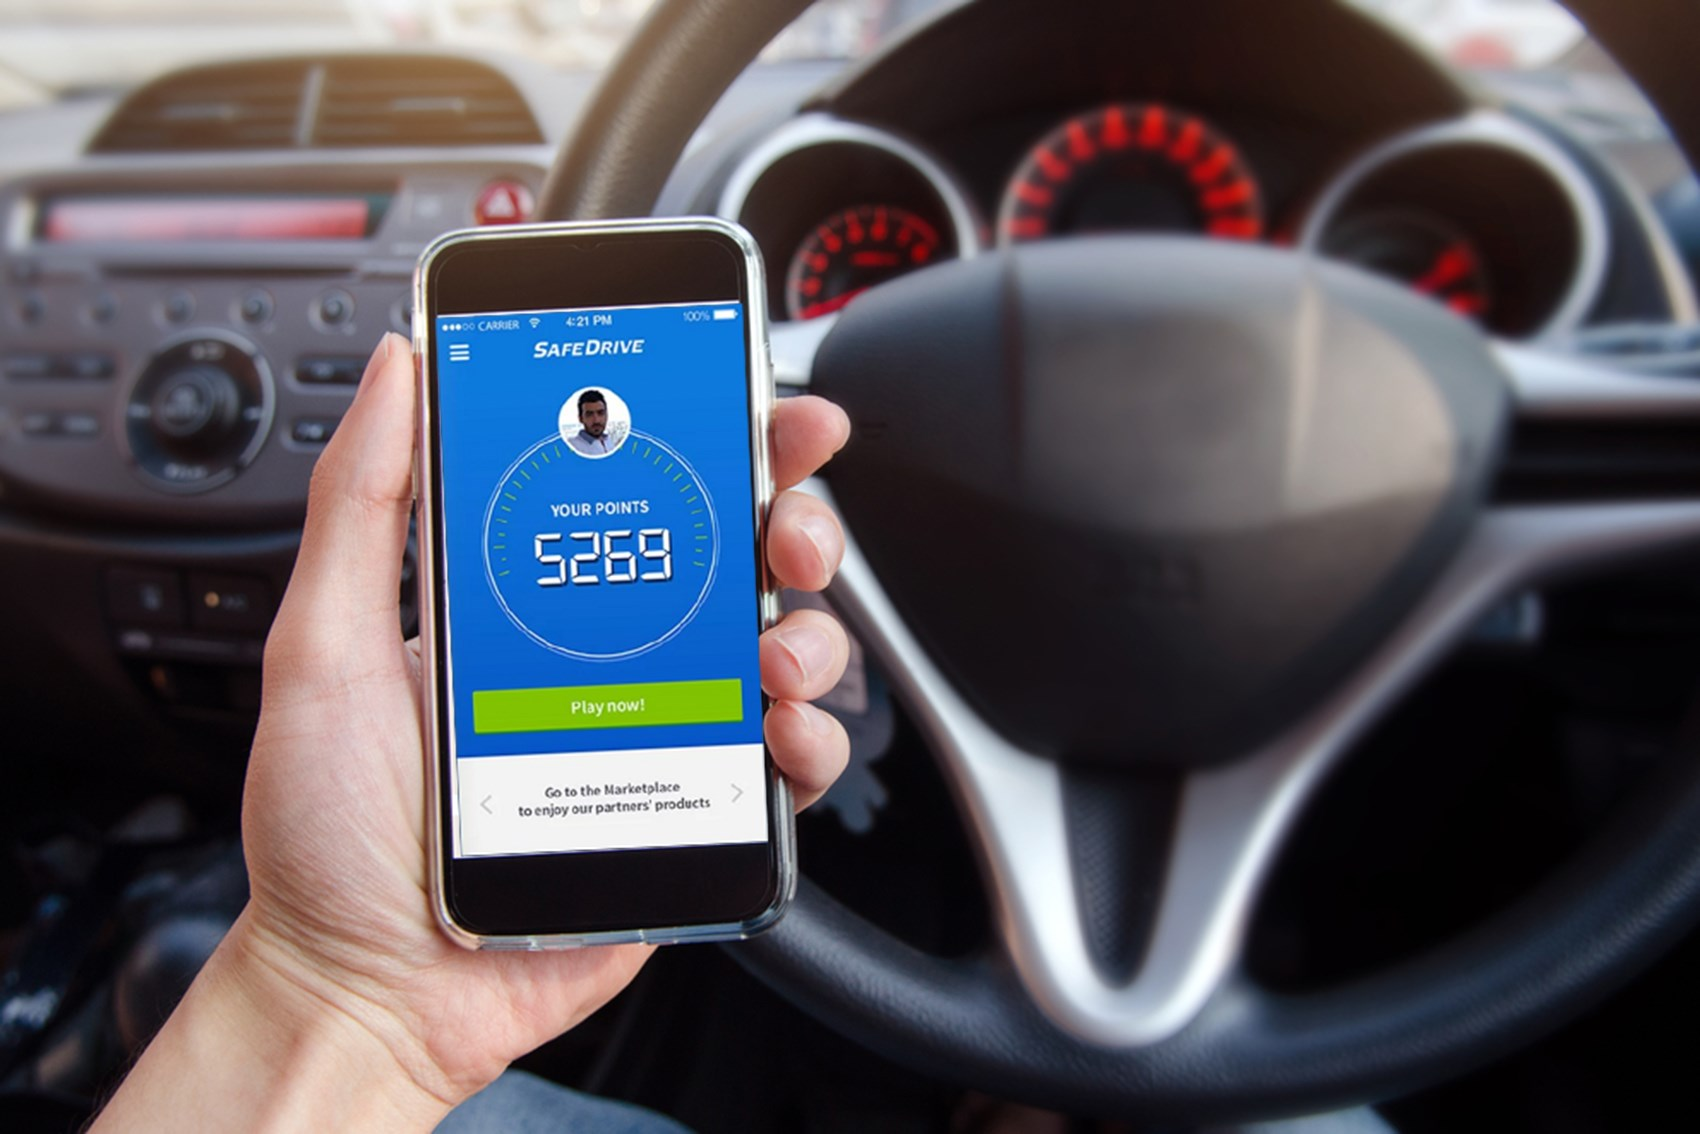 The Ultimate Guide to Road Safety Apps & Reducing Traffic Accidents 3